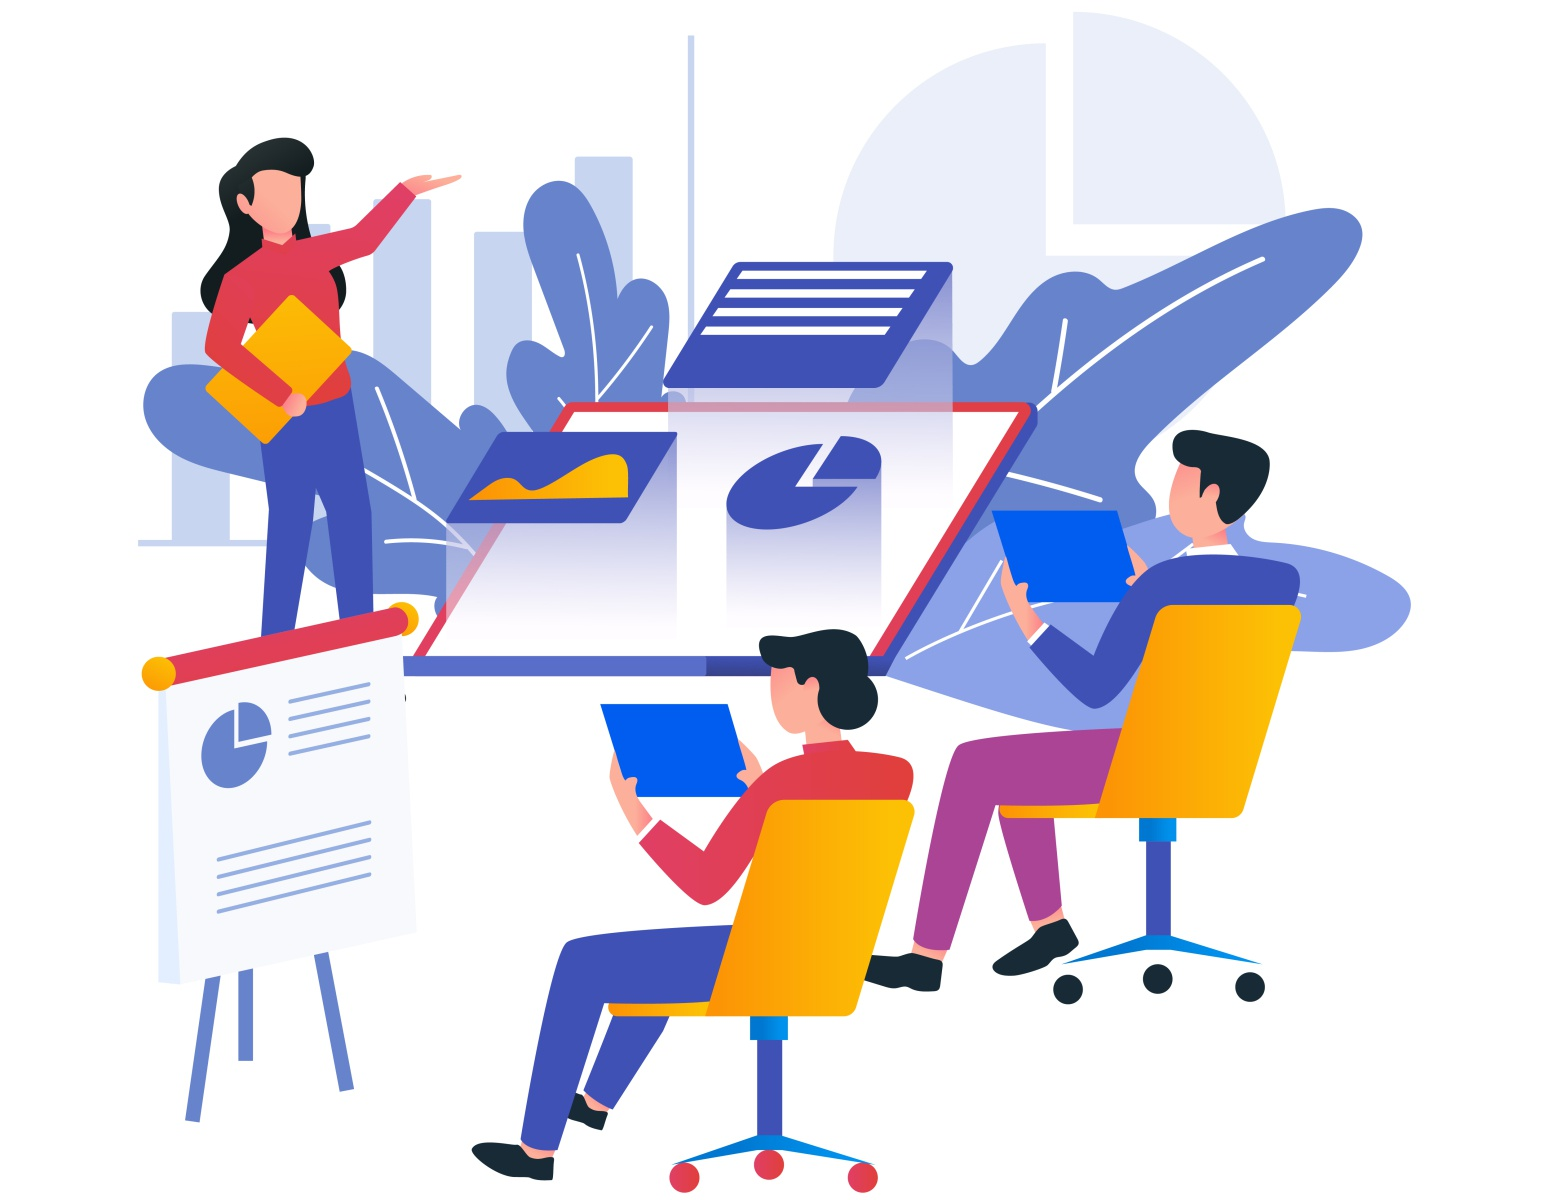 training illustration by Youngky Alfi Andi on Dribbble